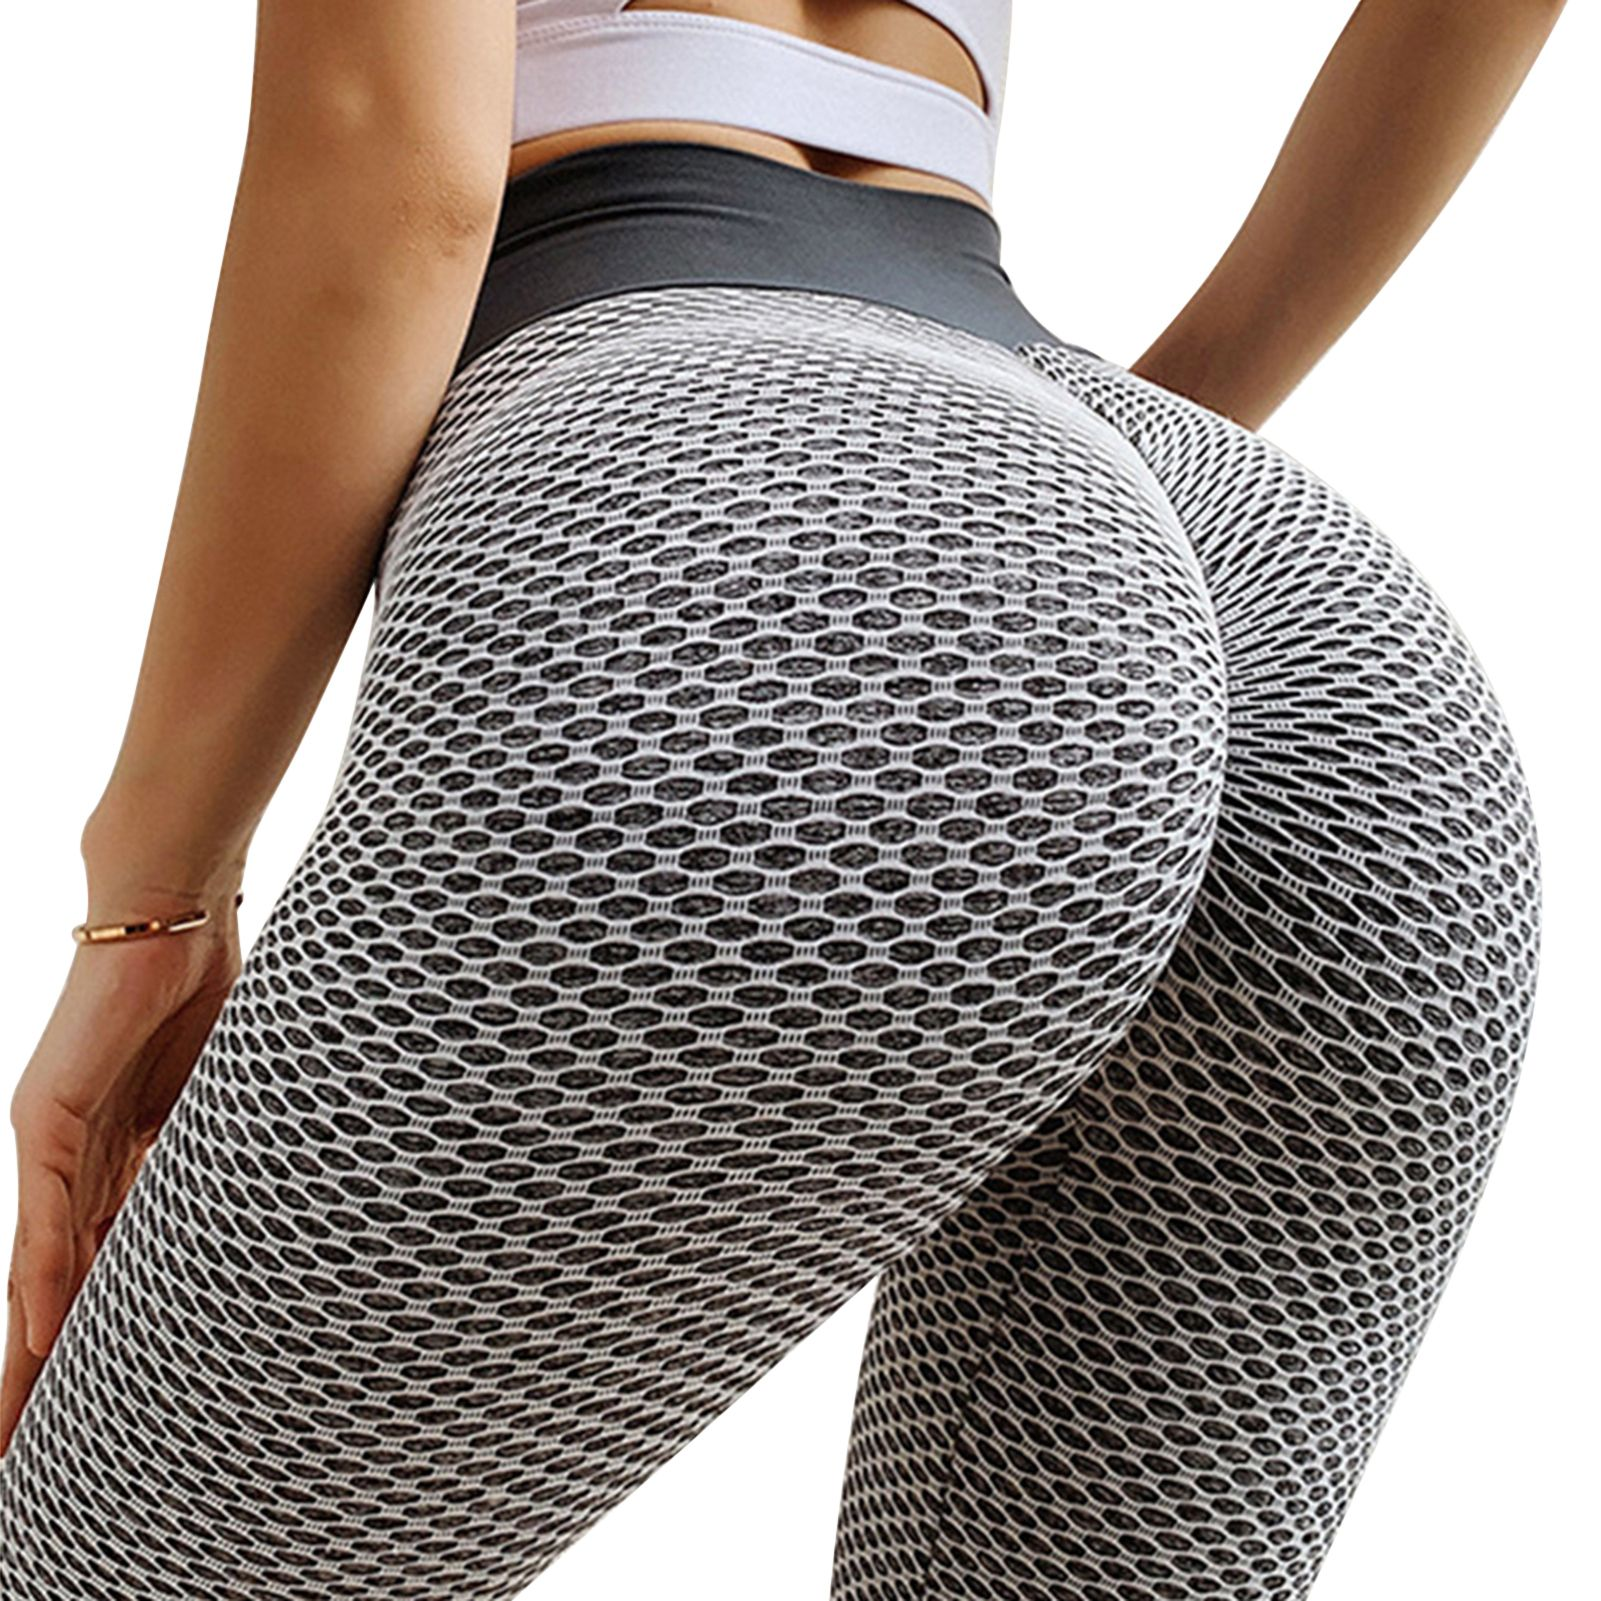 Workout Leggings Breathable High Elasticity Mesh Stretchy Slim Yoga Pants for Home - grey, xl Description: With fashionable mesh design, the yoga